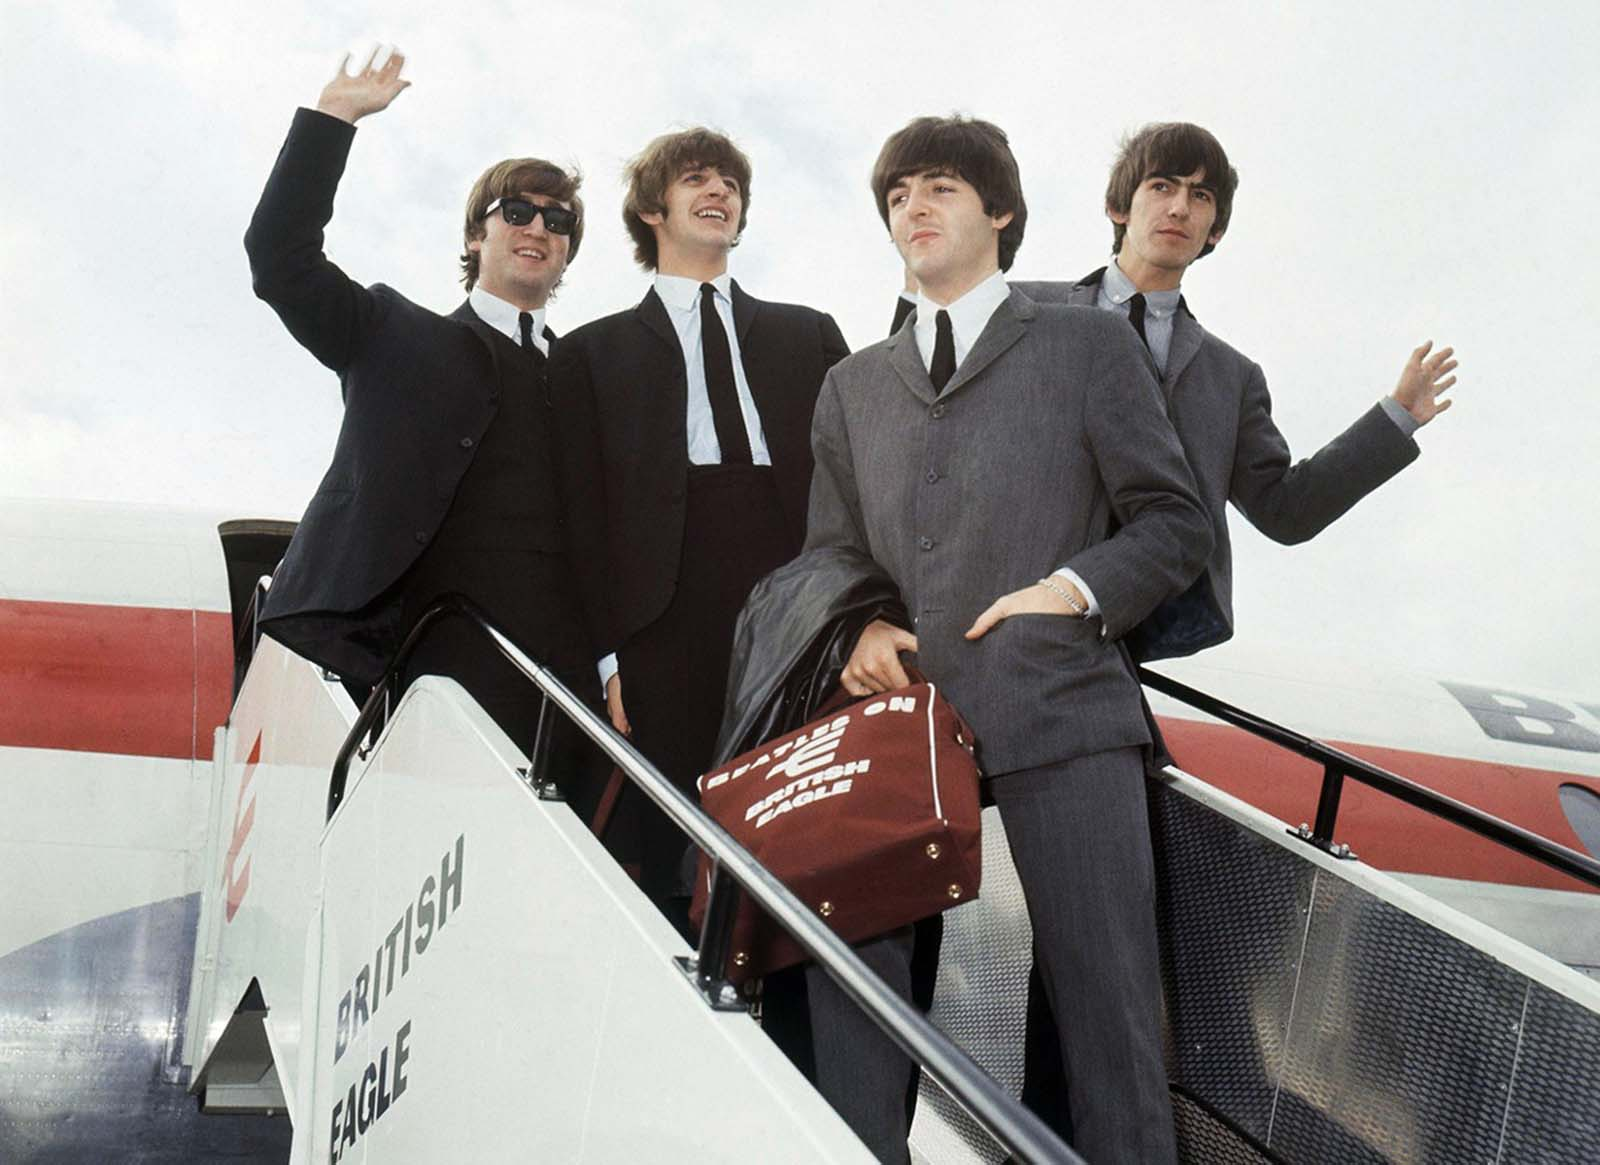 The Beatles leave London airport in 1964. From left: John Lennon, Ringo Starr, Paul McCartney and George Harrison. Enthusiastic fans welcomed the Beatles in airports and concert halls around the world in 1964, as Beatlemania swept the globe.